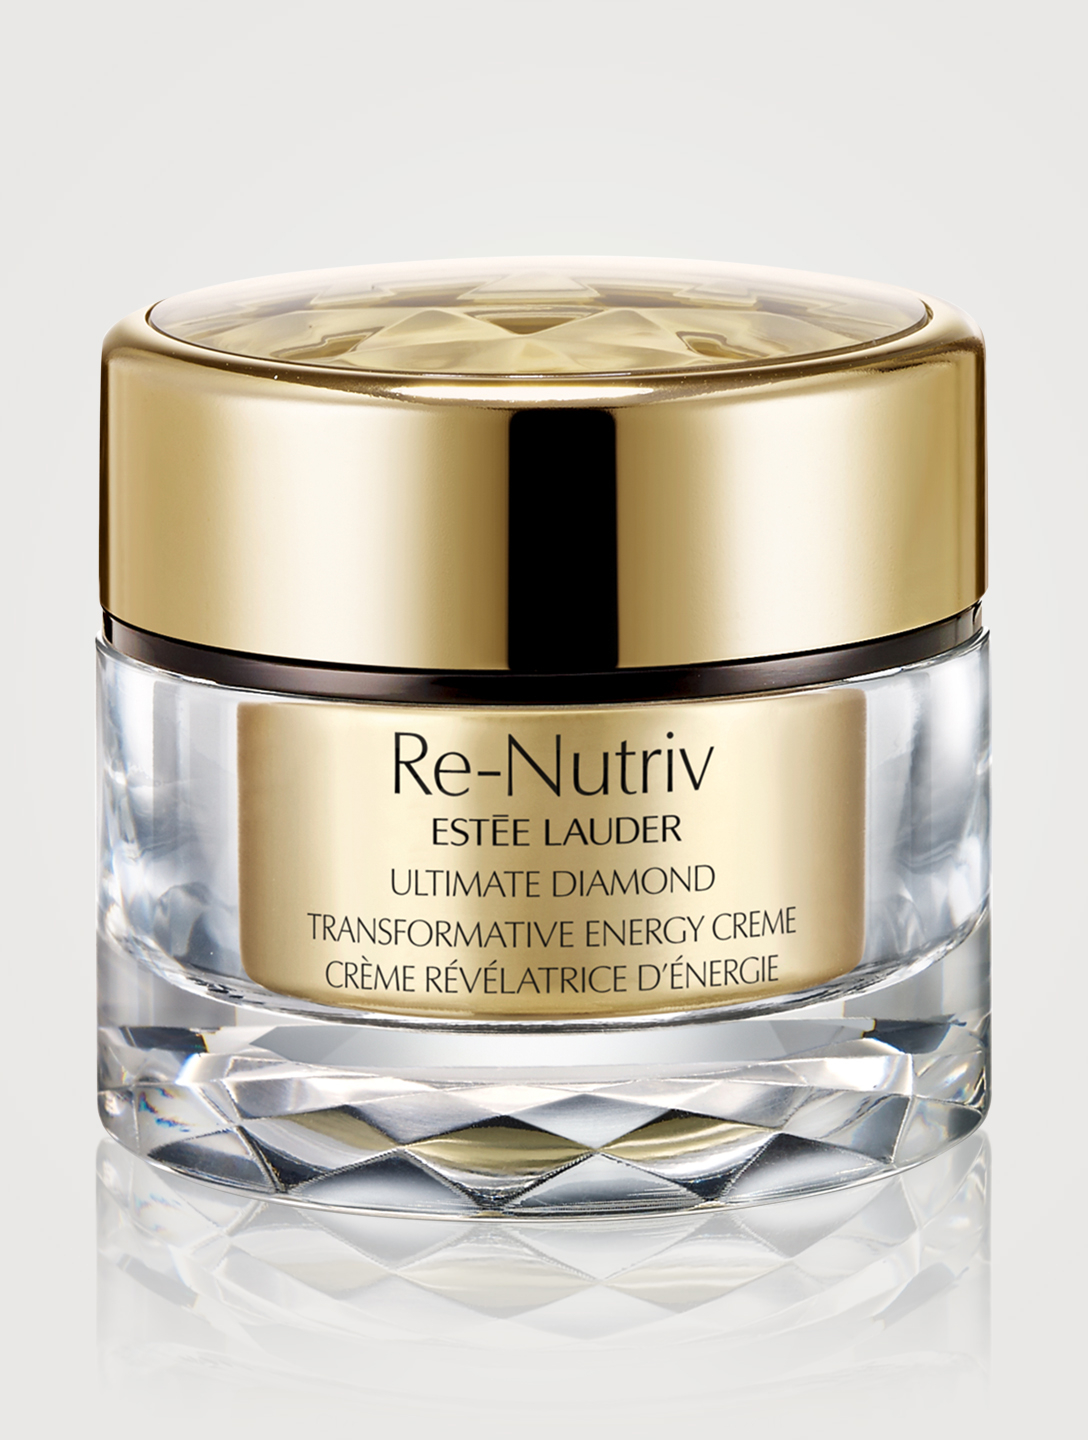 ESTÉE LAUDER Re-Nutriv Ultimate Diamond Transformative Energy Creme Beauty